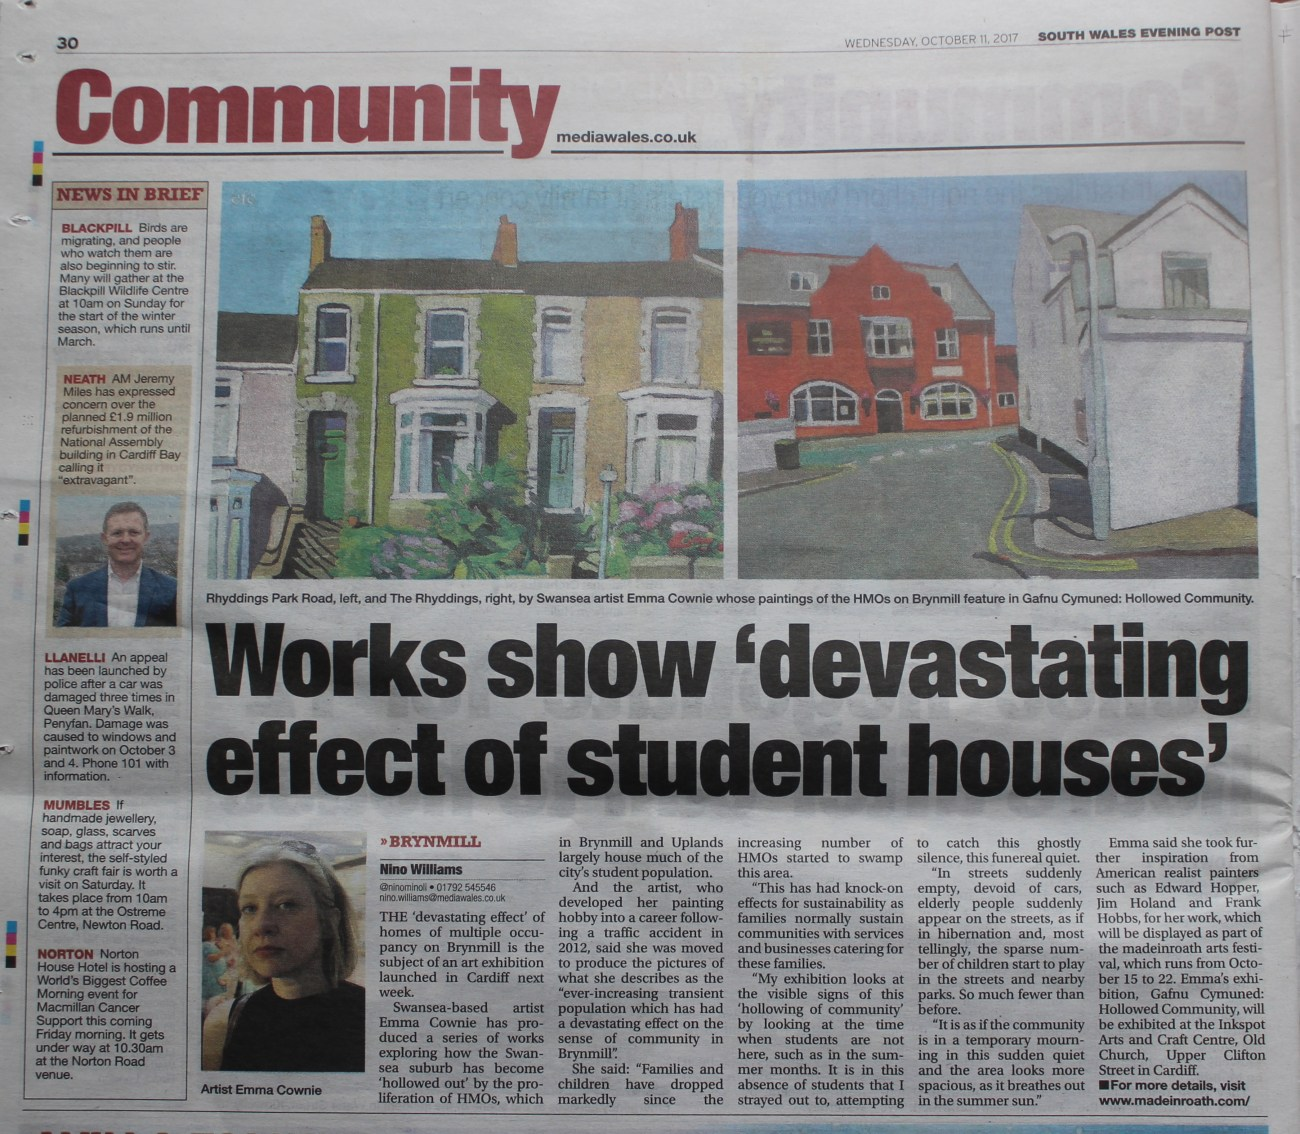 Evening Post ARTICLE 11th Oct 2017